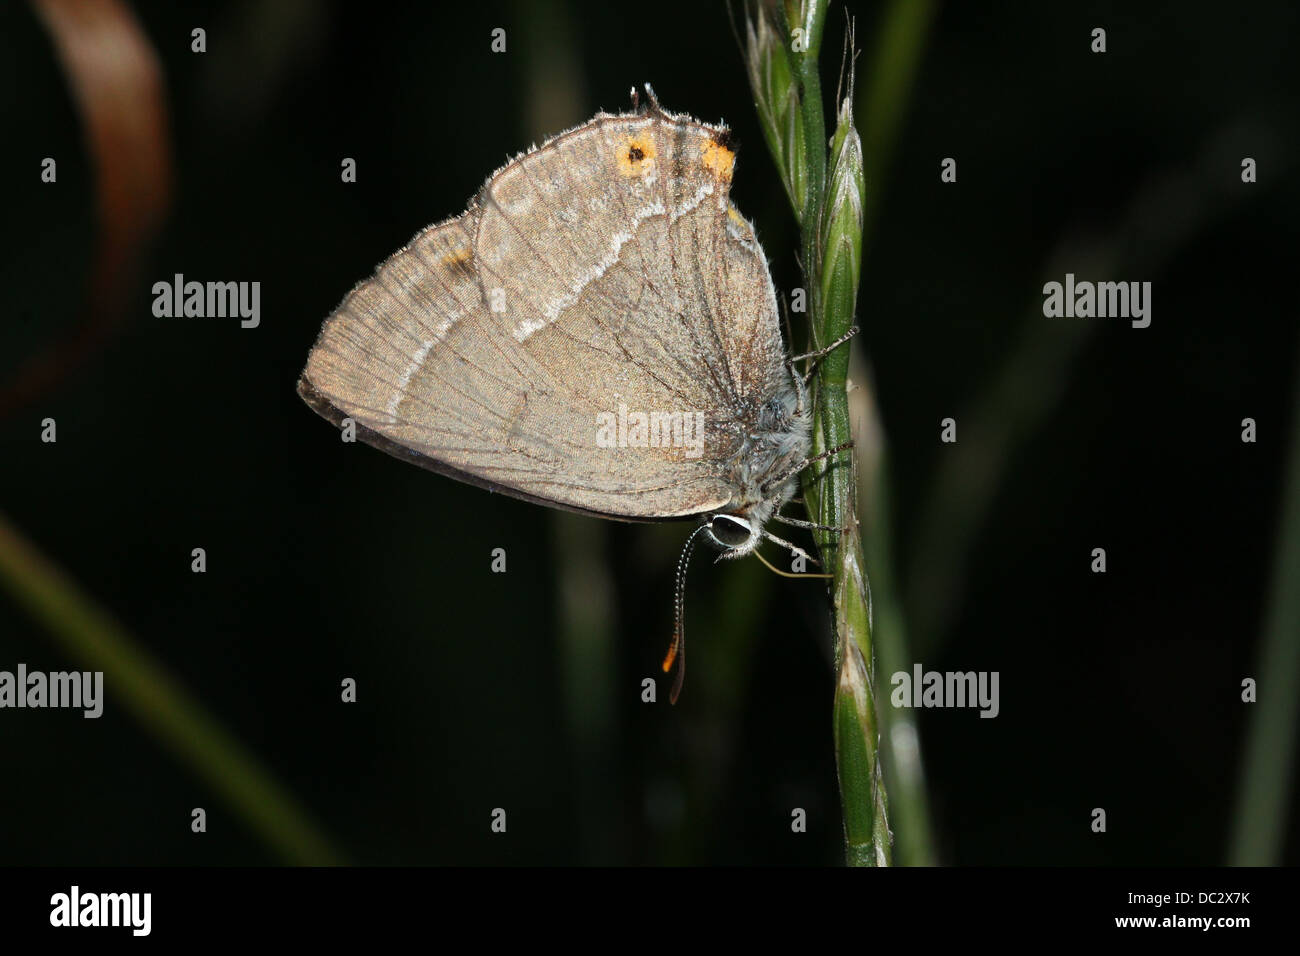 Purple Hairstreak Butterfly (Favonius quercus) clinging to a blade of grass - Stock Image